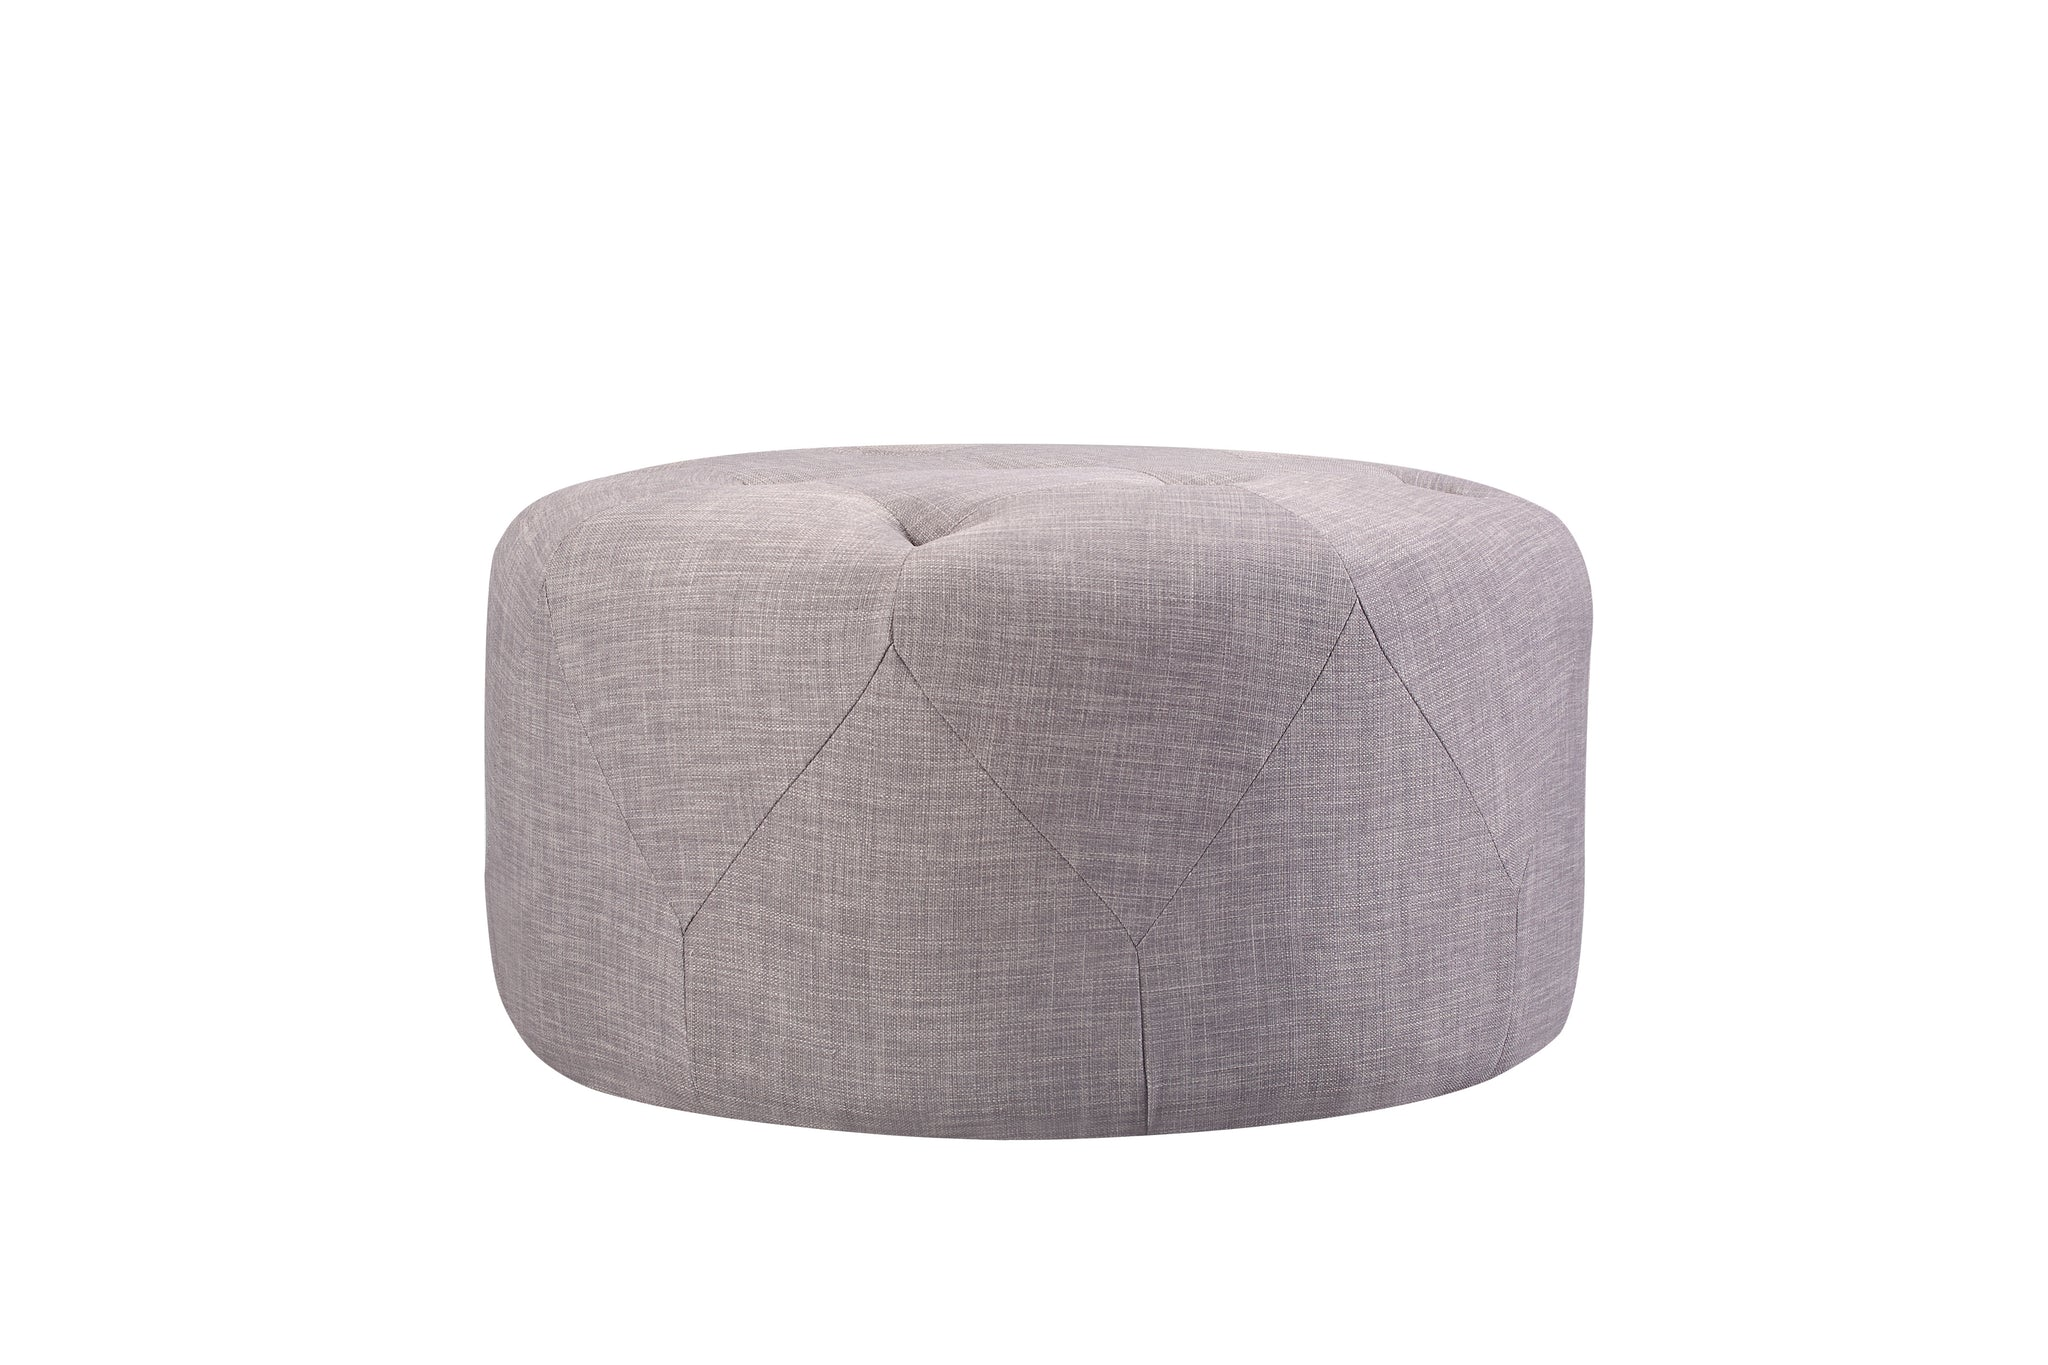 1210FTGRY,Freeman Medium Ottoman in Grey Tweed